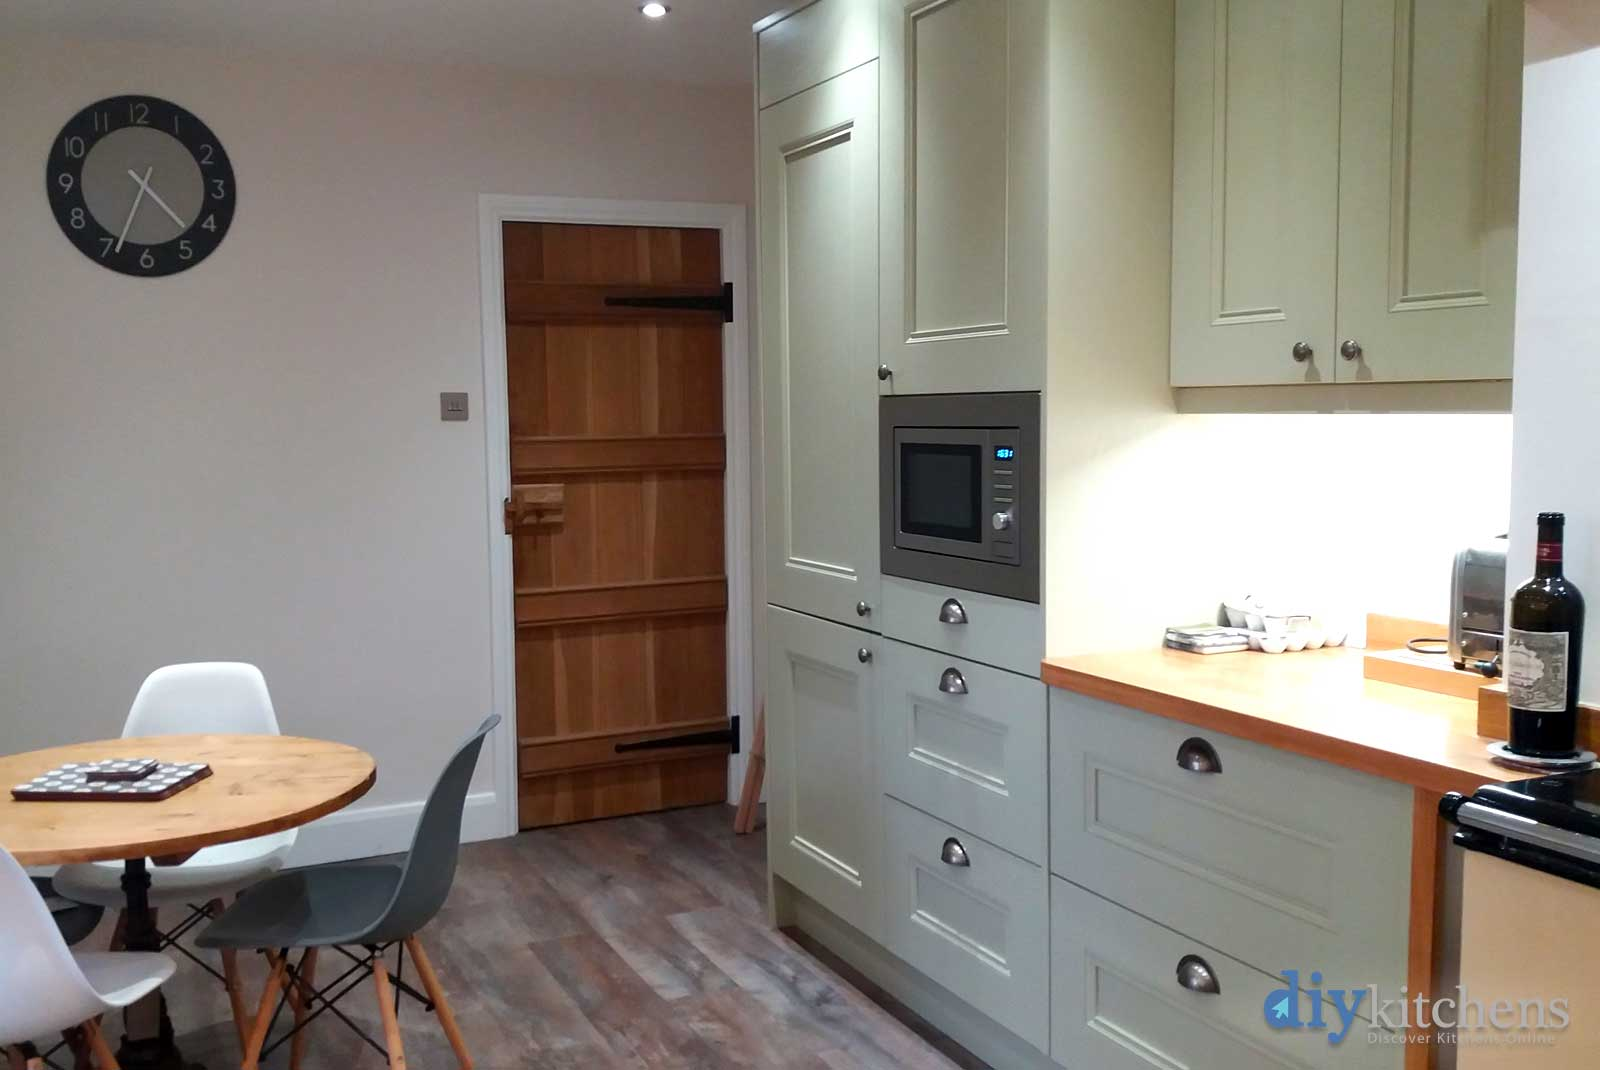 Katie From Chiddingly Complete Kitchen Pics Of The Bedale